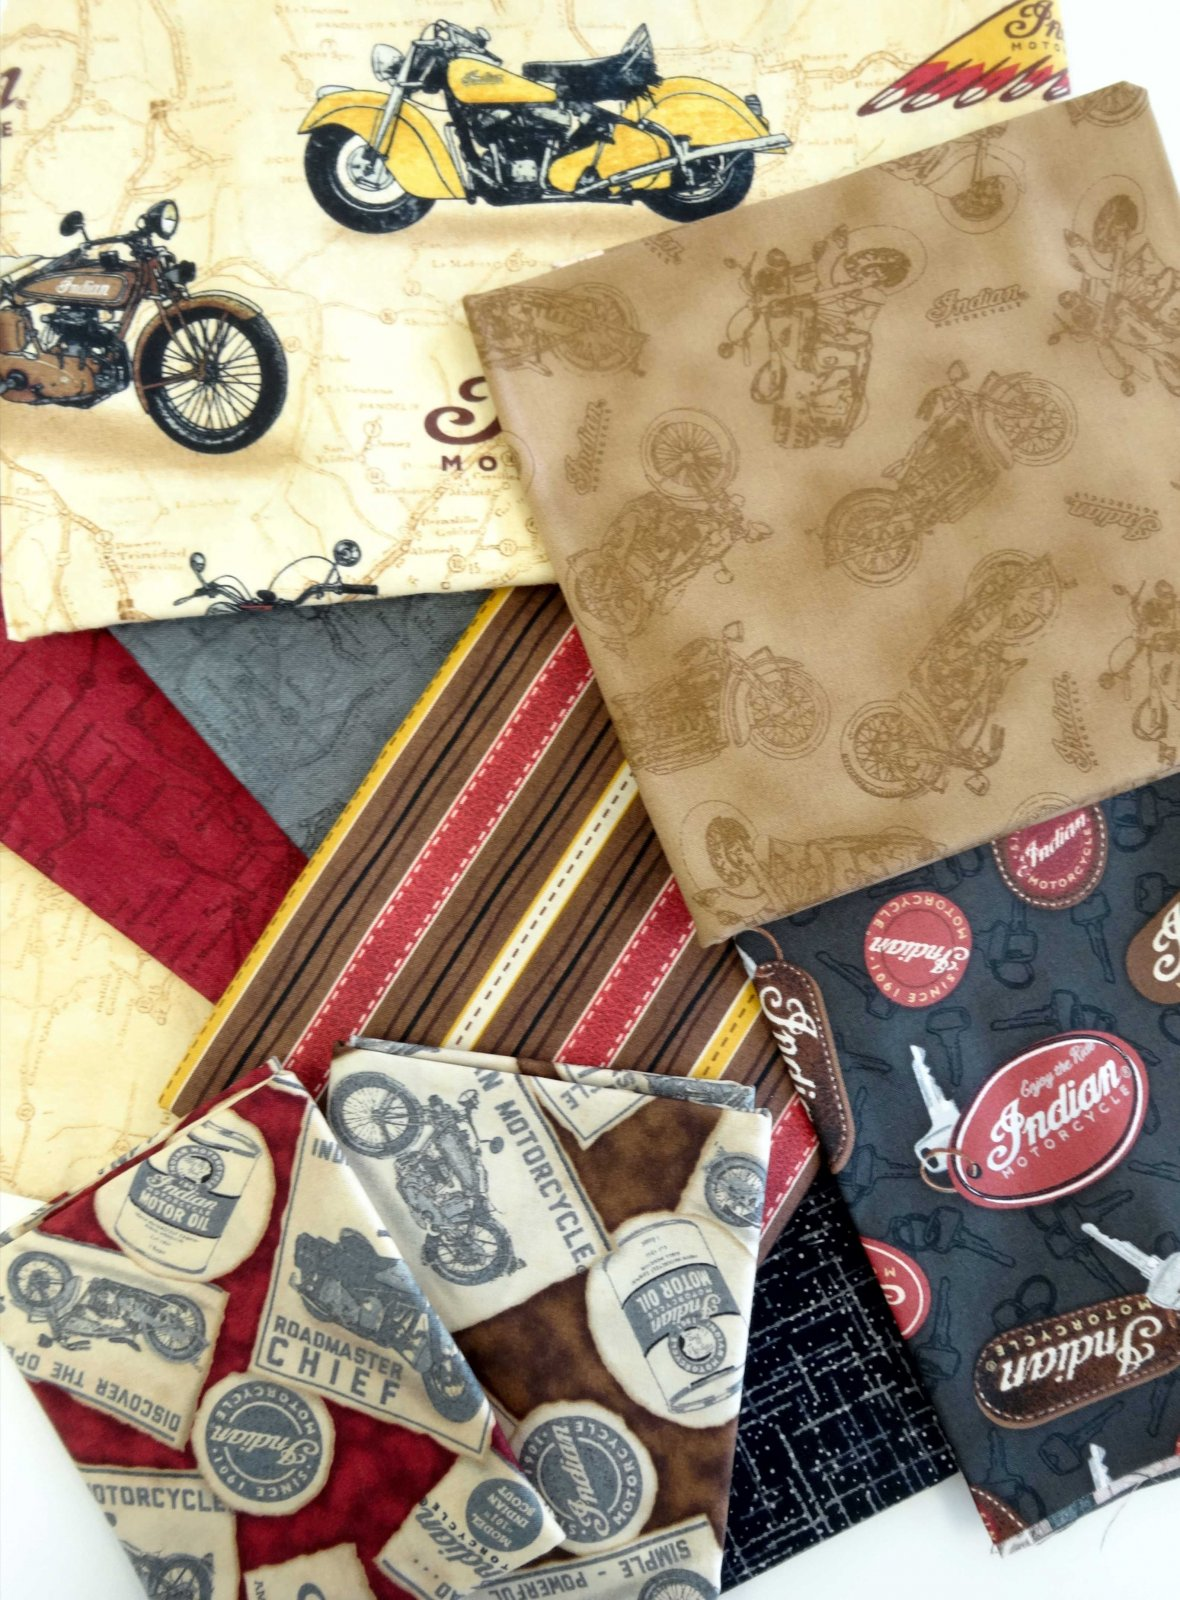 Classic Indian Motorcycle Quilt Kit : motorcycle quilting fabric - Adamdwight.com